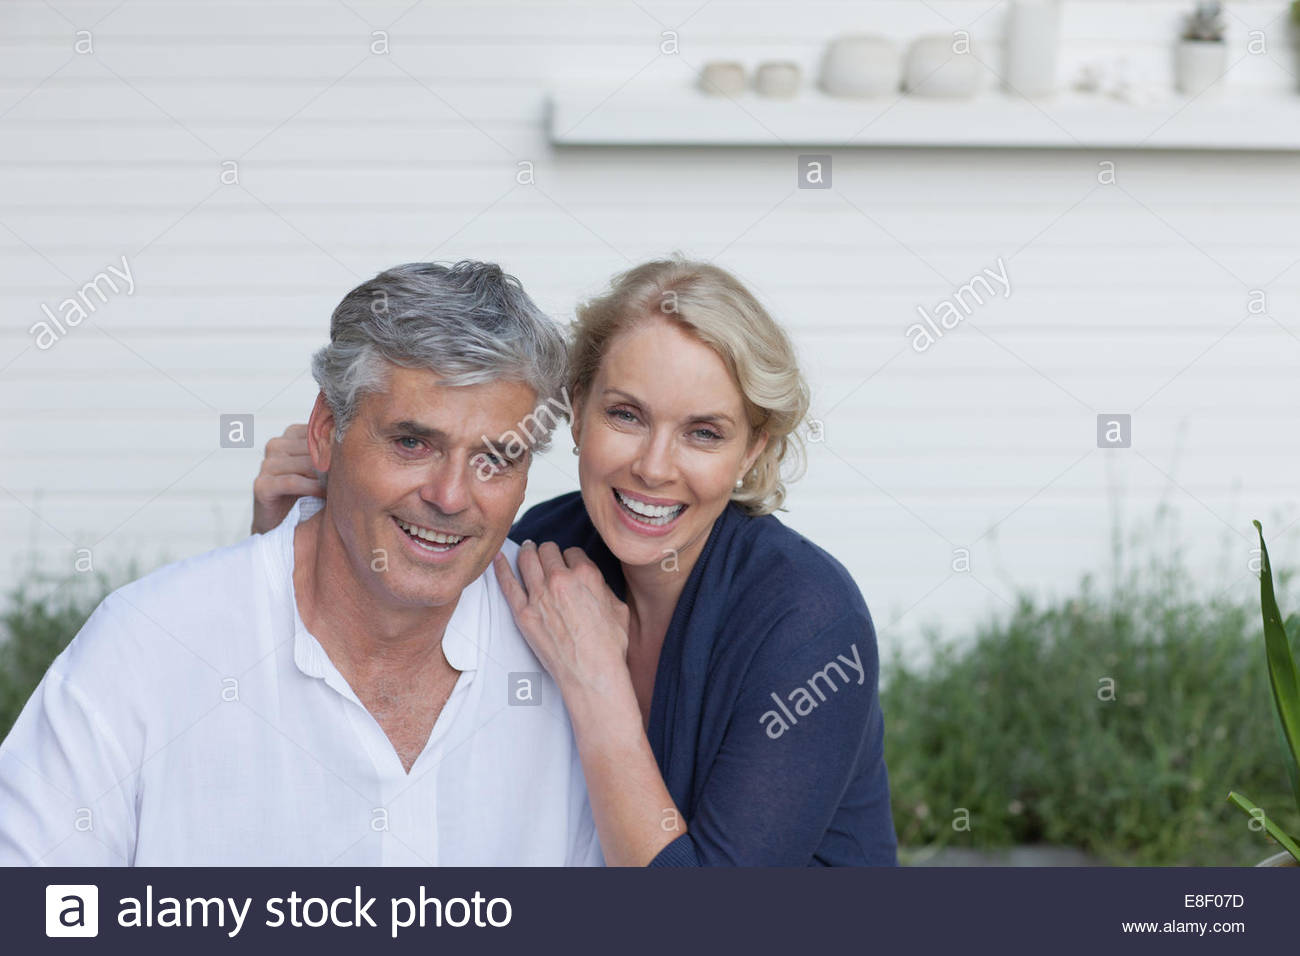 Smiling couple hugging outdoors - Stock Image